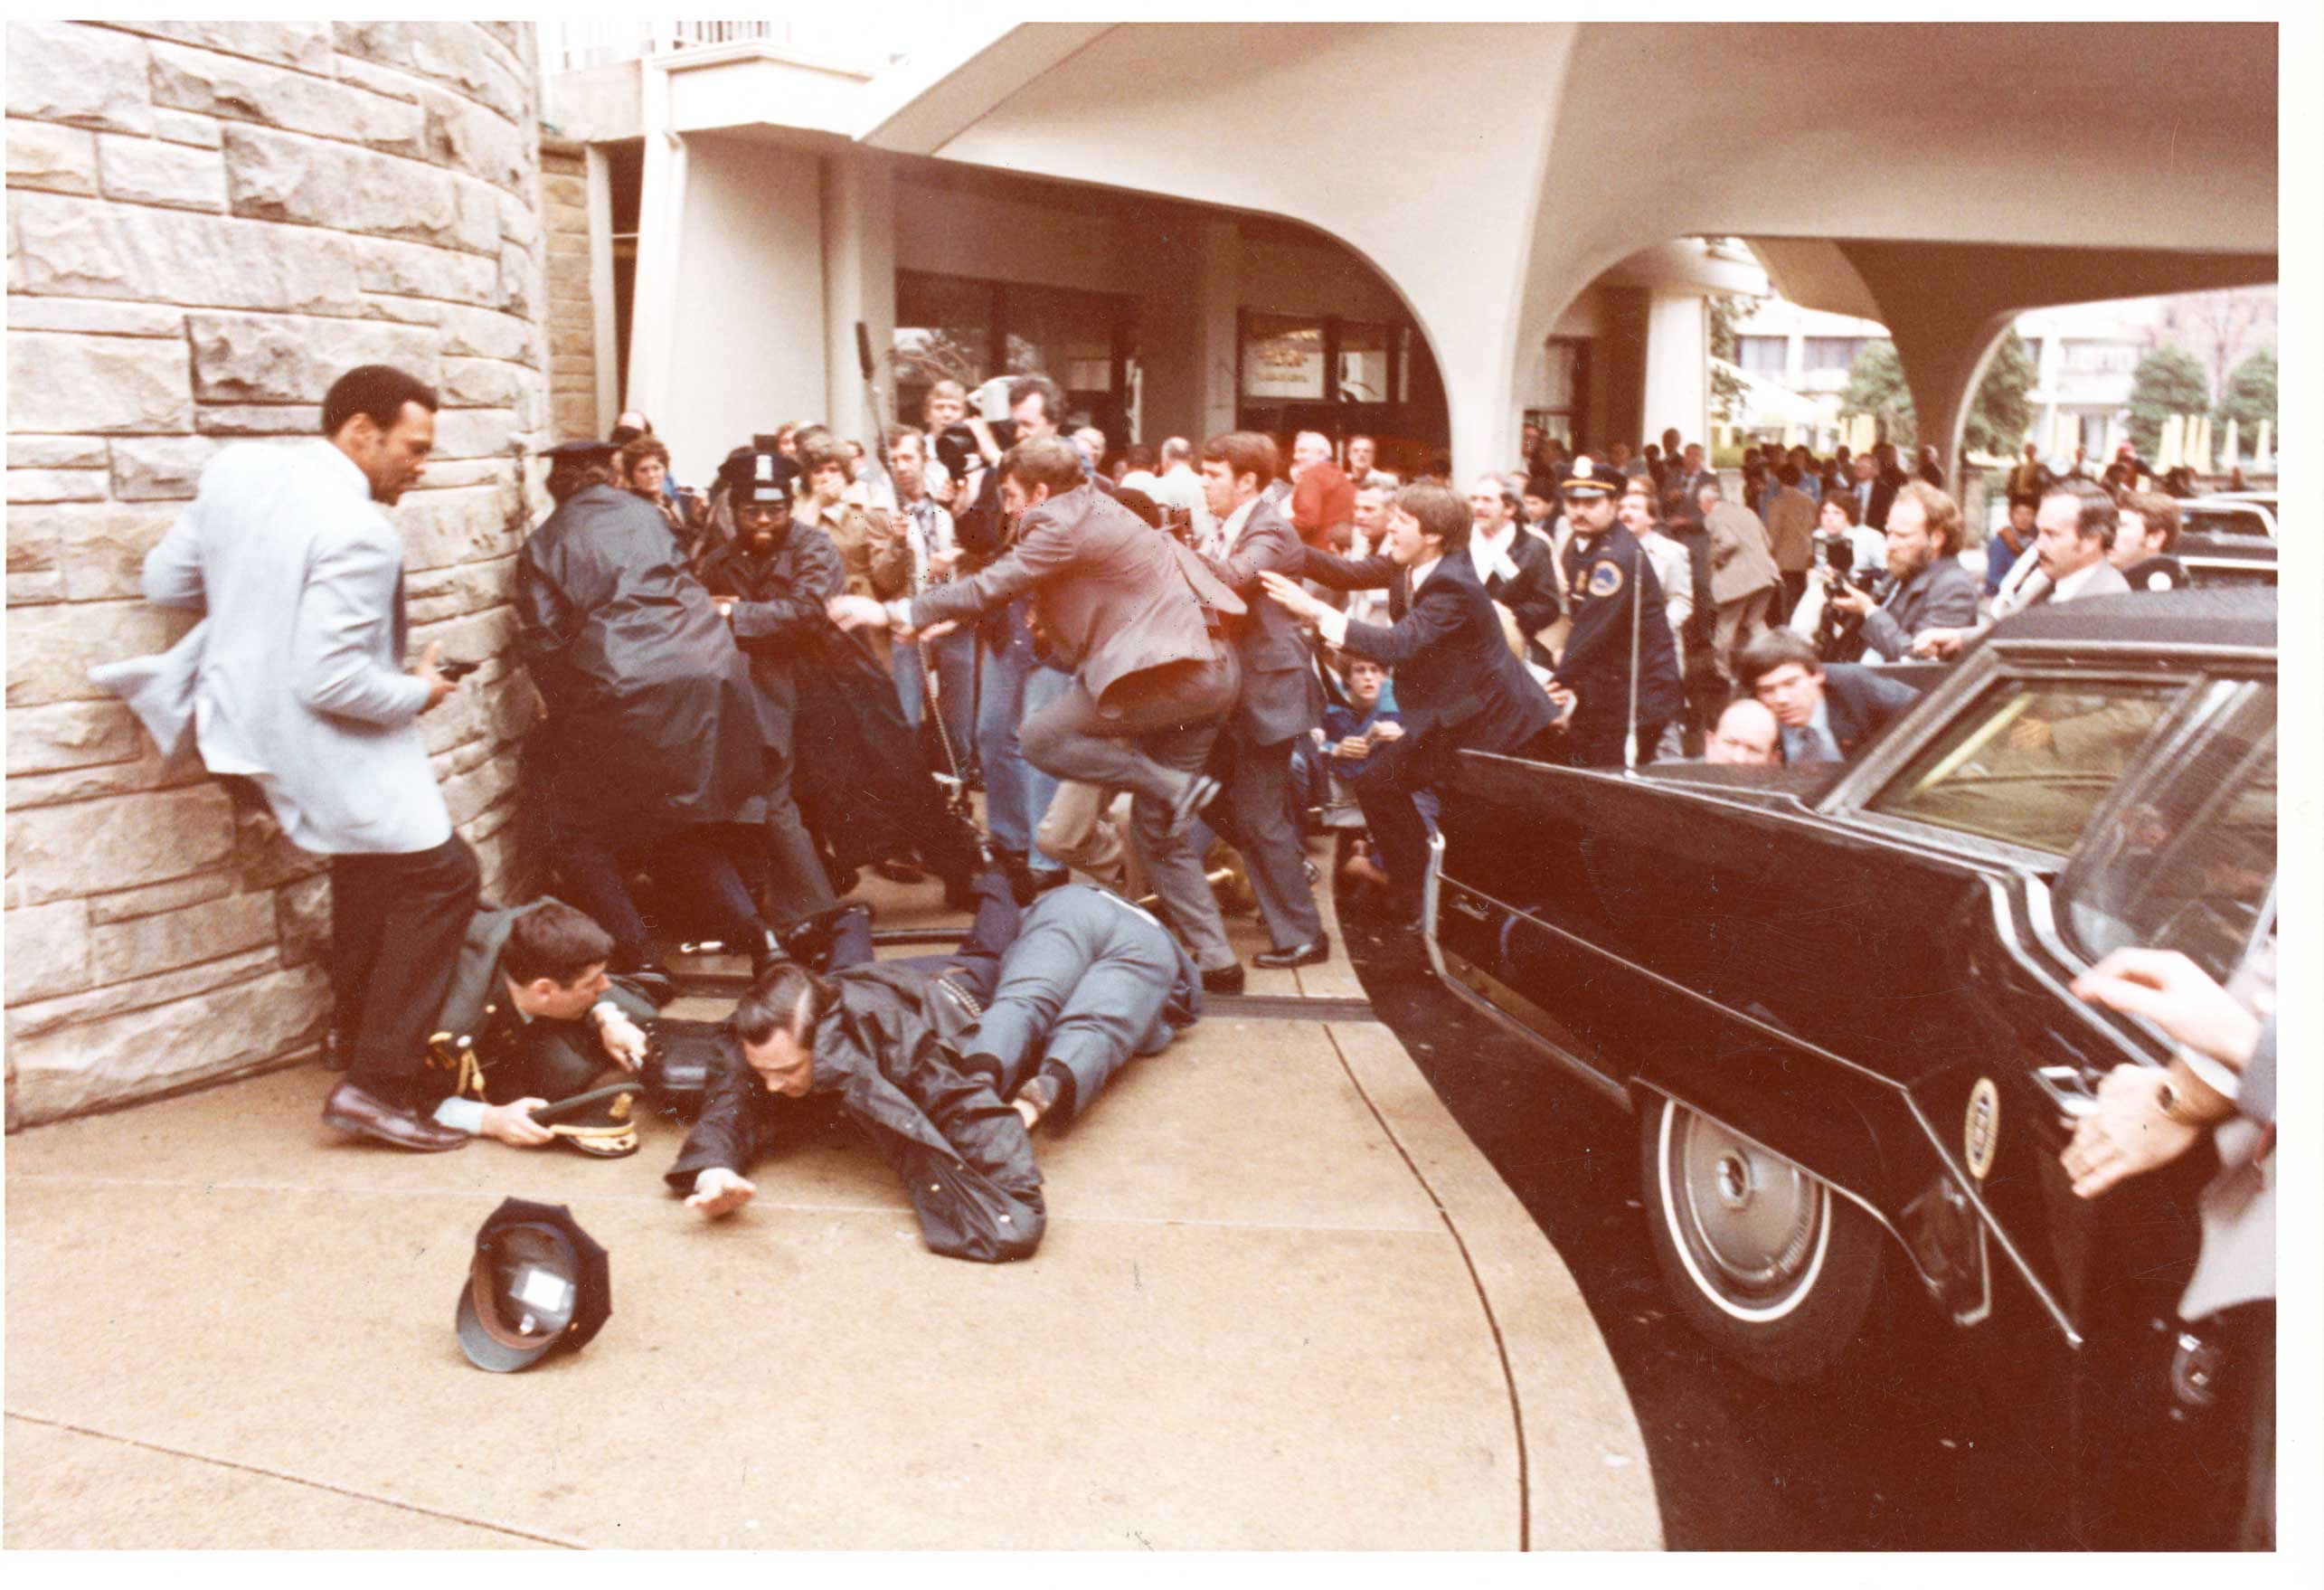 The scene immediately after the shooting of Ronald Reagan. Press Sec. James Brady and agent Delahanty are on the floor.